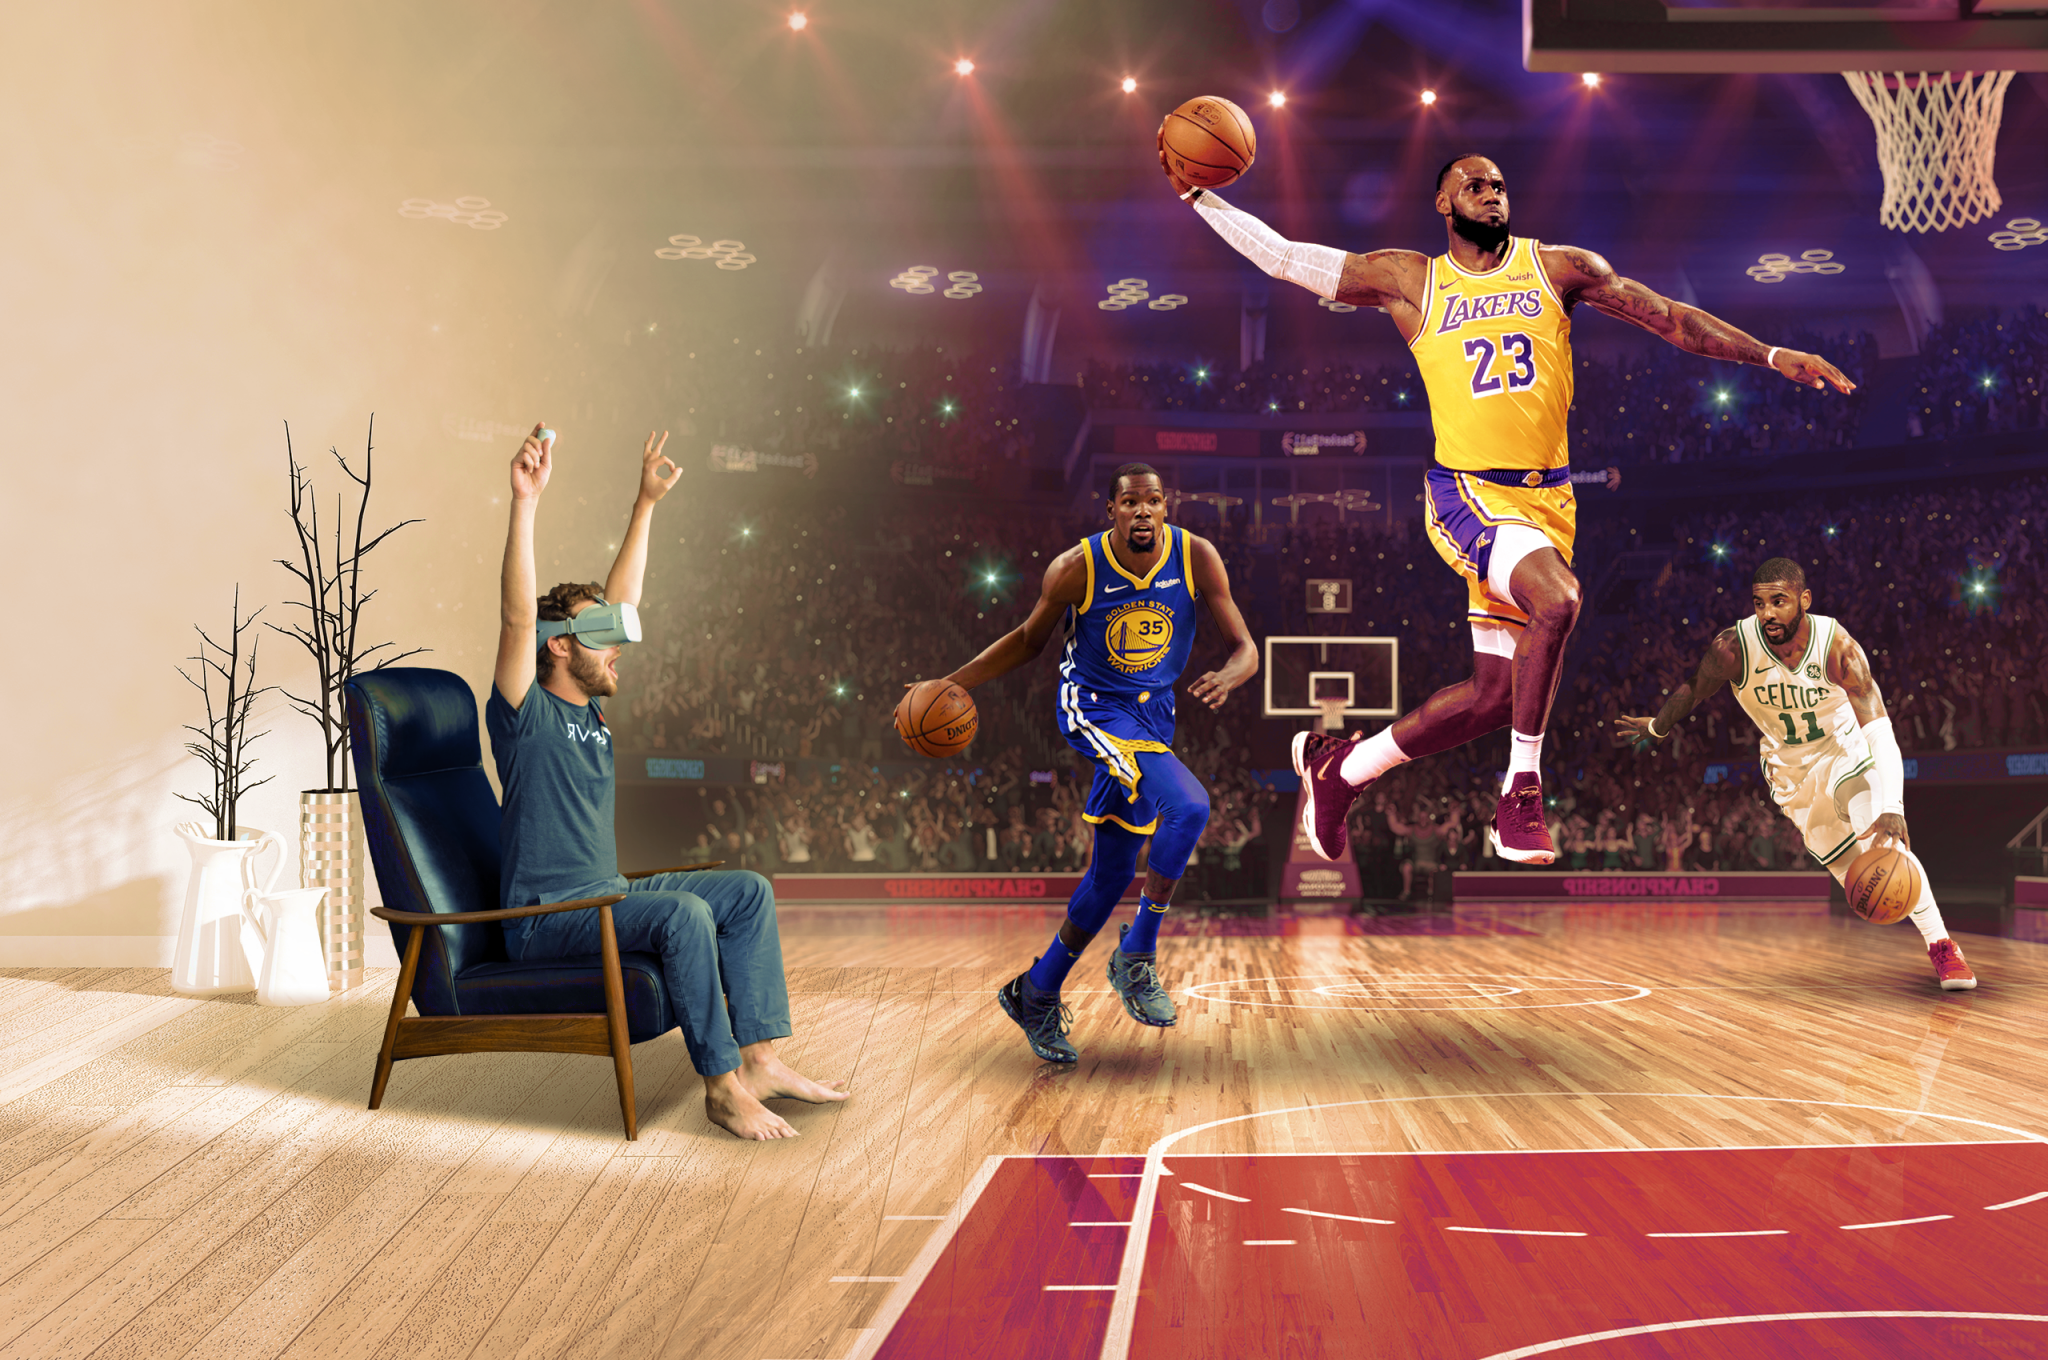 NBA in VR promo graphic